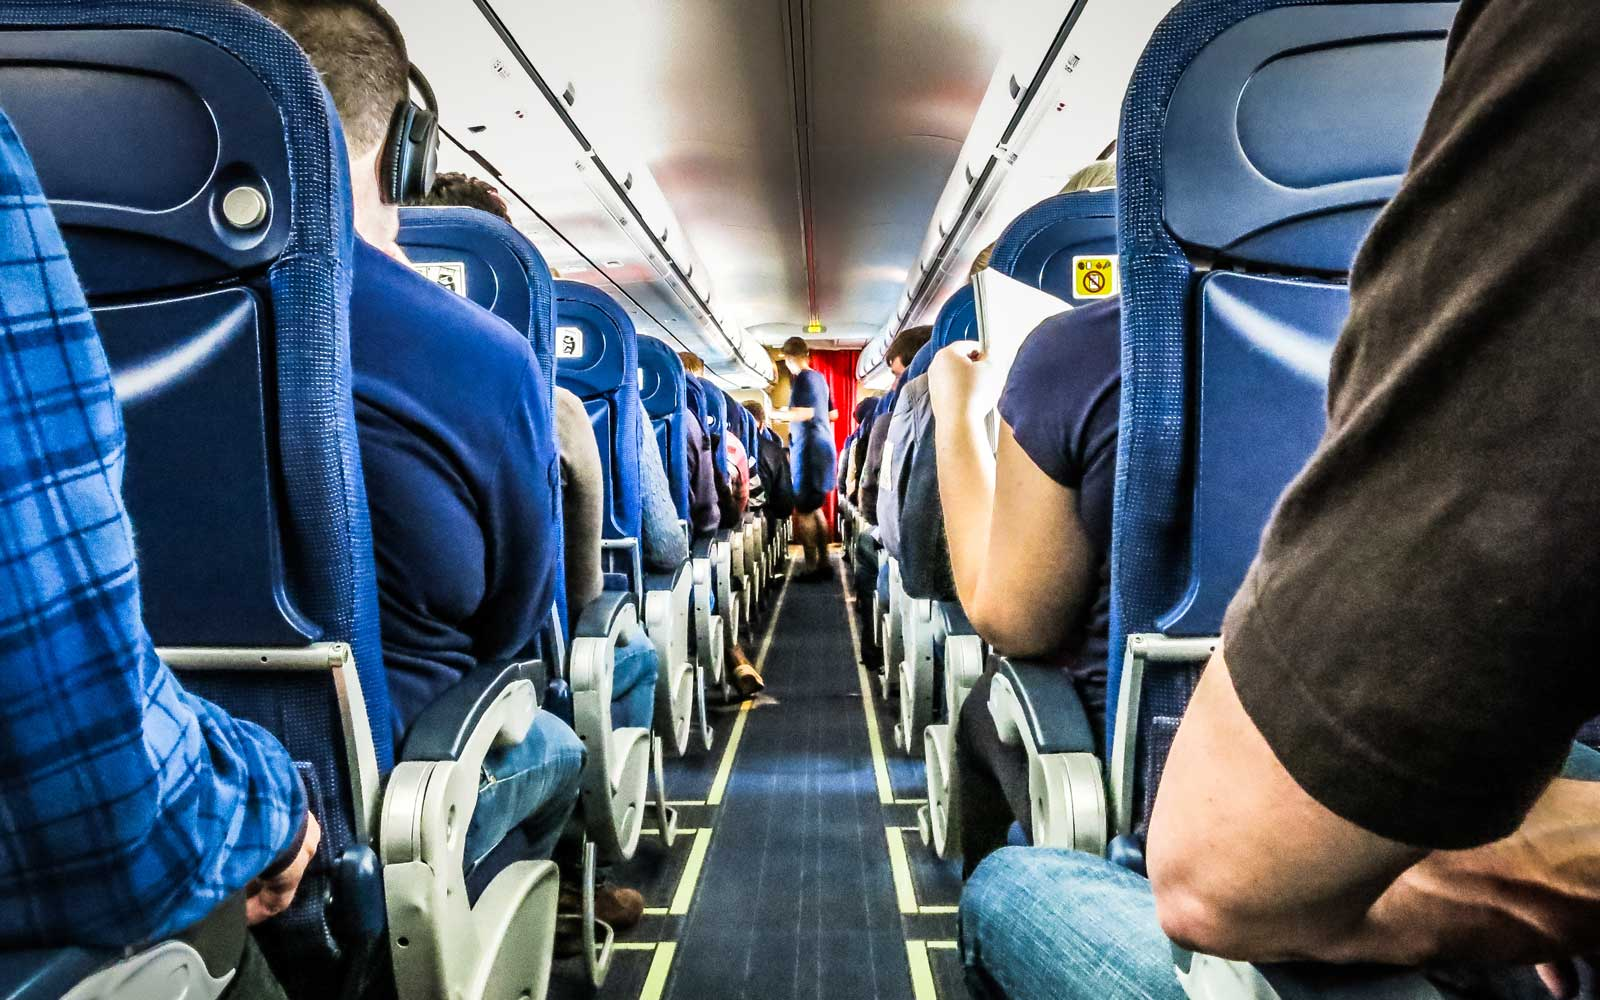 The $3 Item Travel Experts and Doctors Say You Shouldn't Fly Without